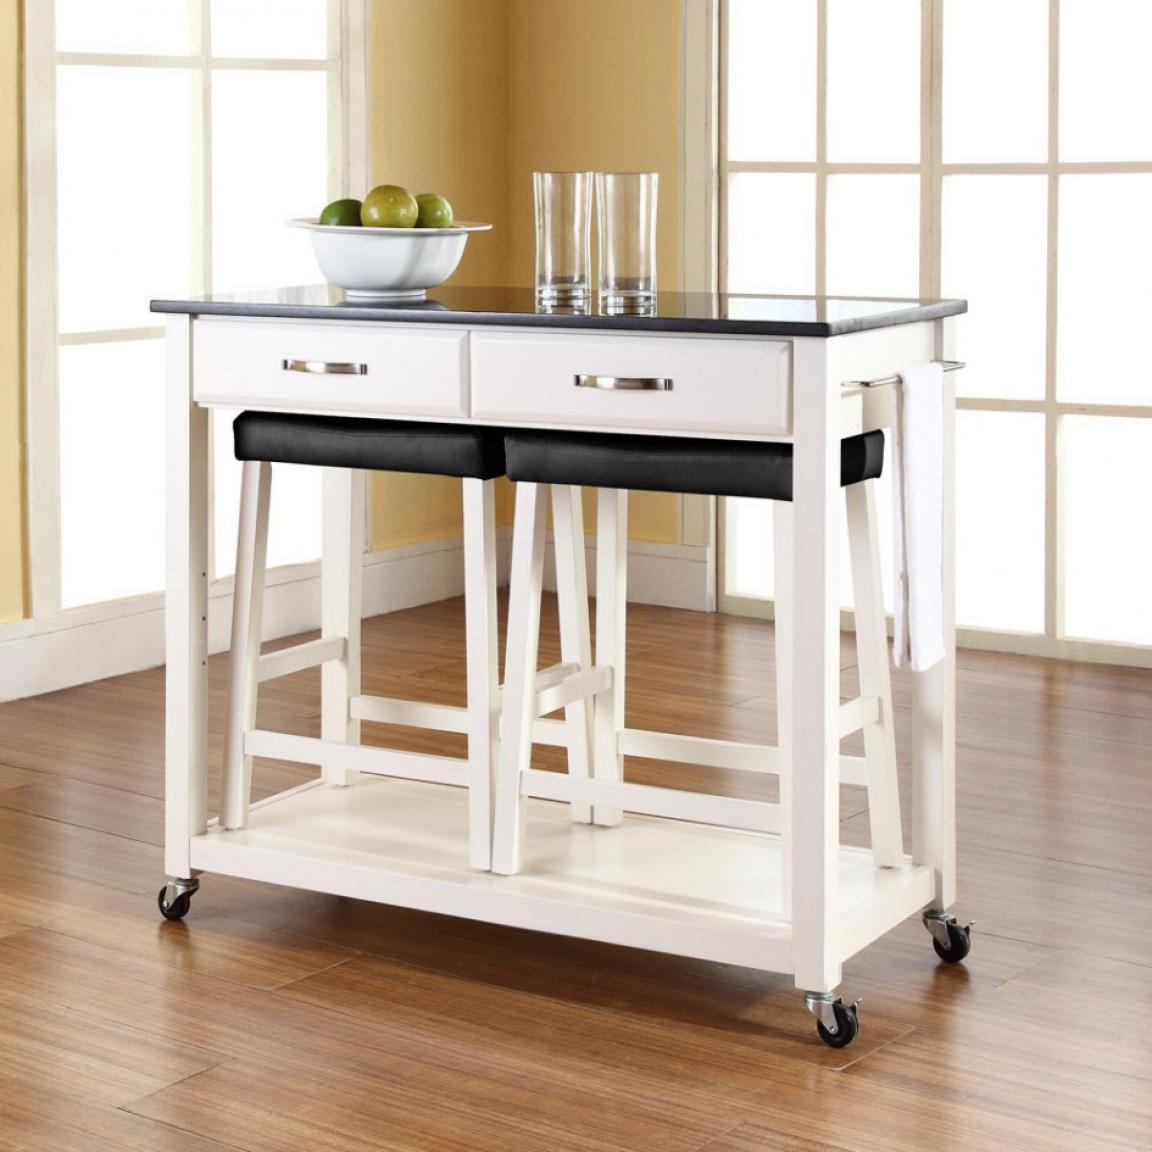 White-kitchen-island-cart-with-stools